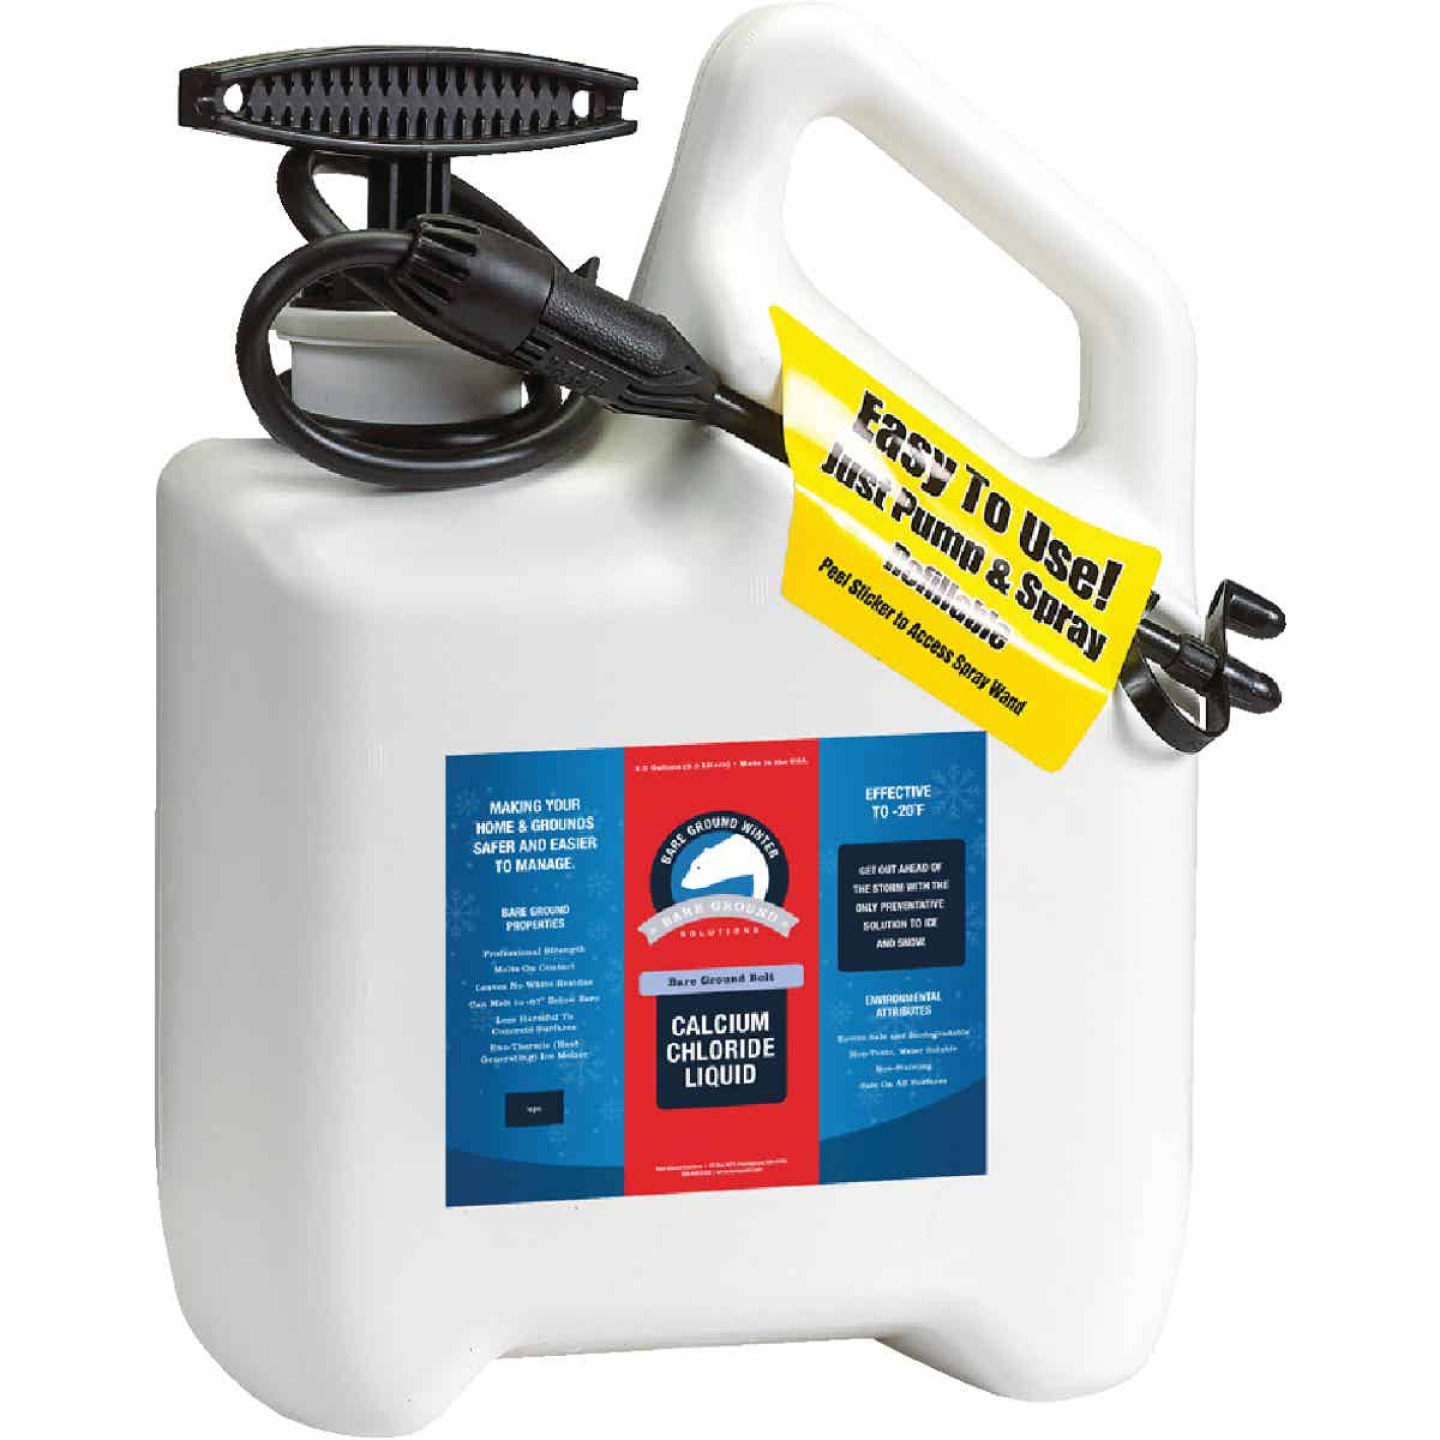 Bare Ground 1 Gal. Liquid Ice Melt System with Pump Sprayer Image 1